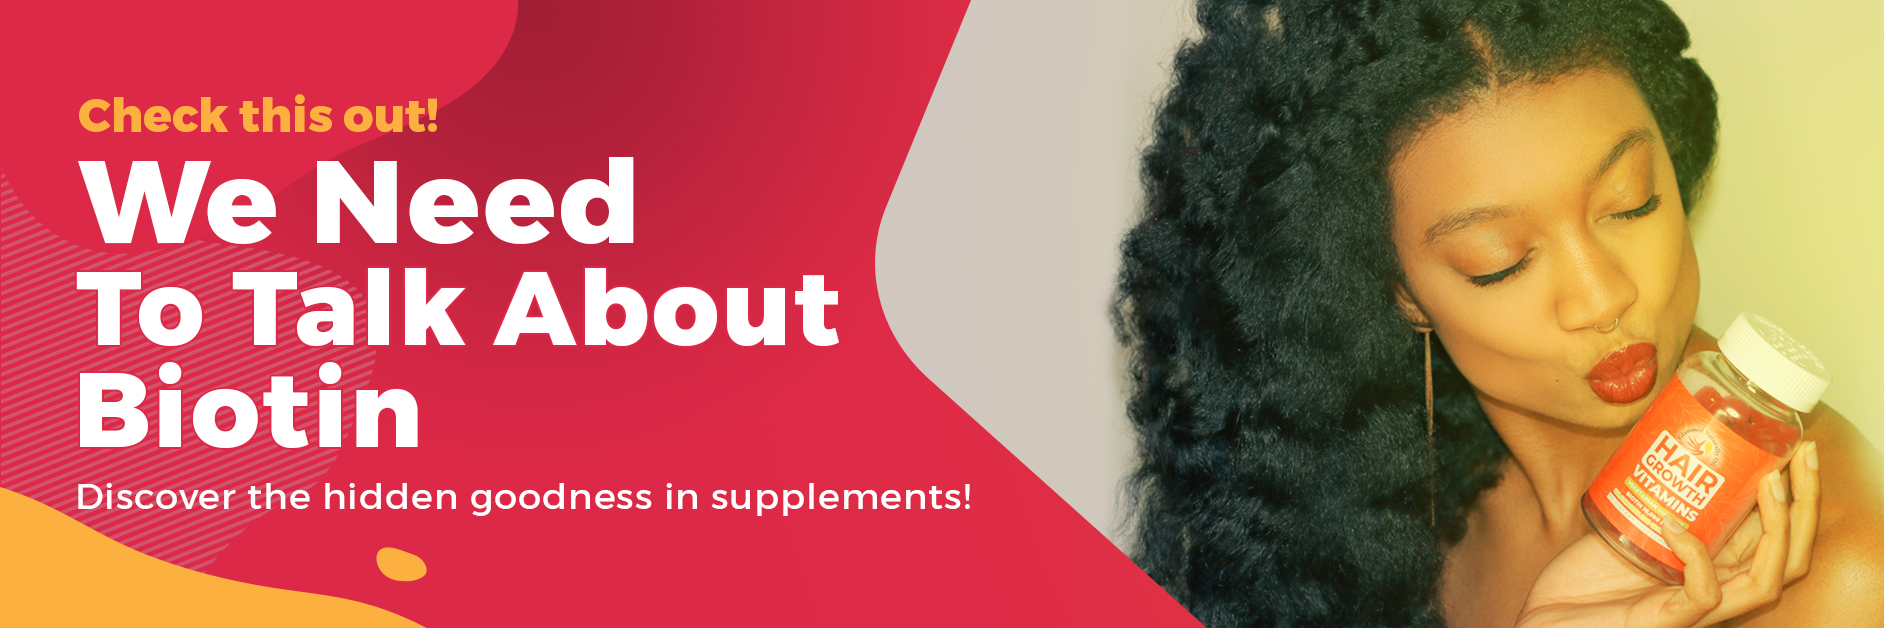 We need to talk about Biotin; Discover the hidden goodness in Supplements!